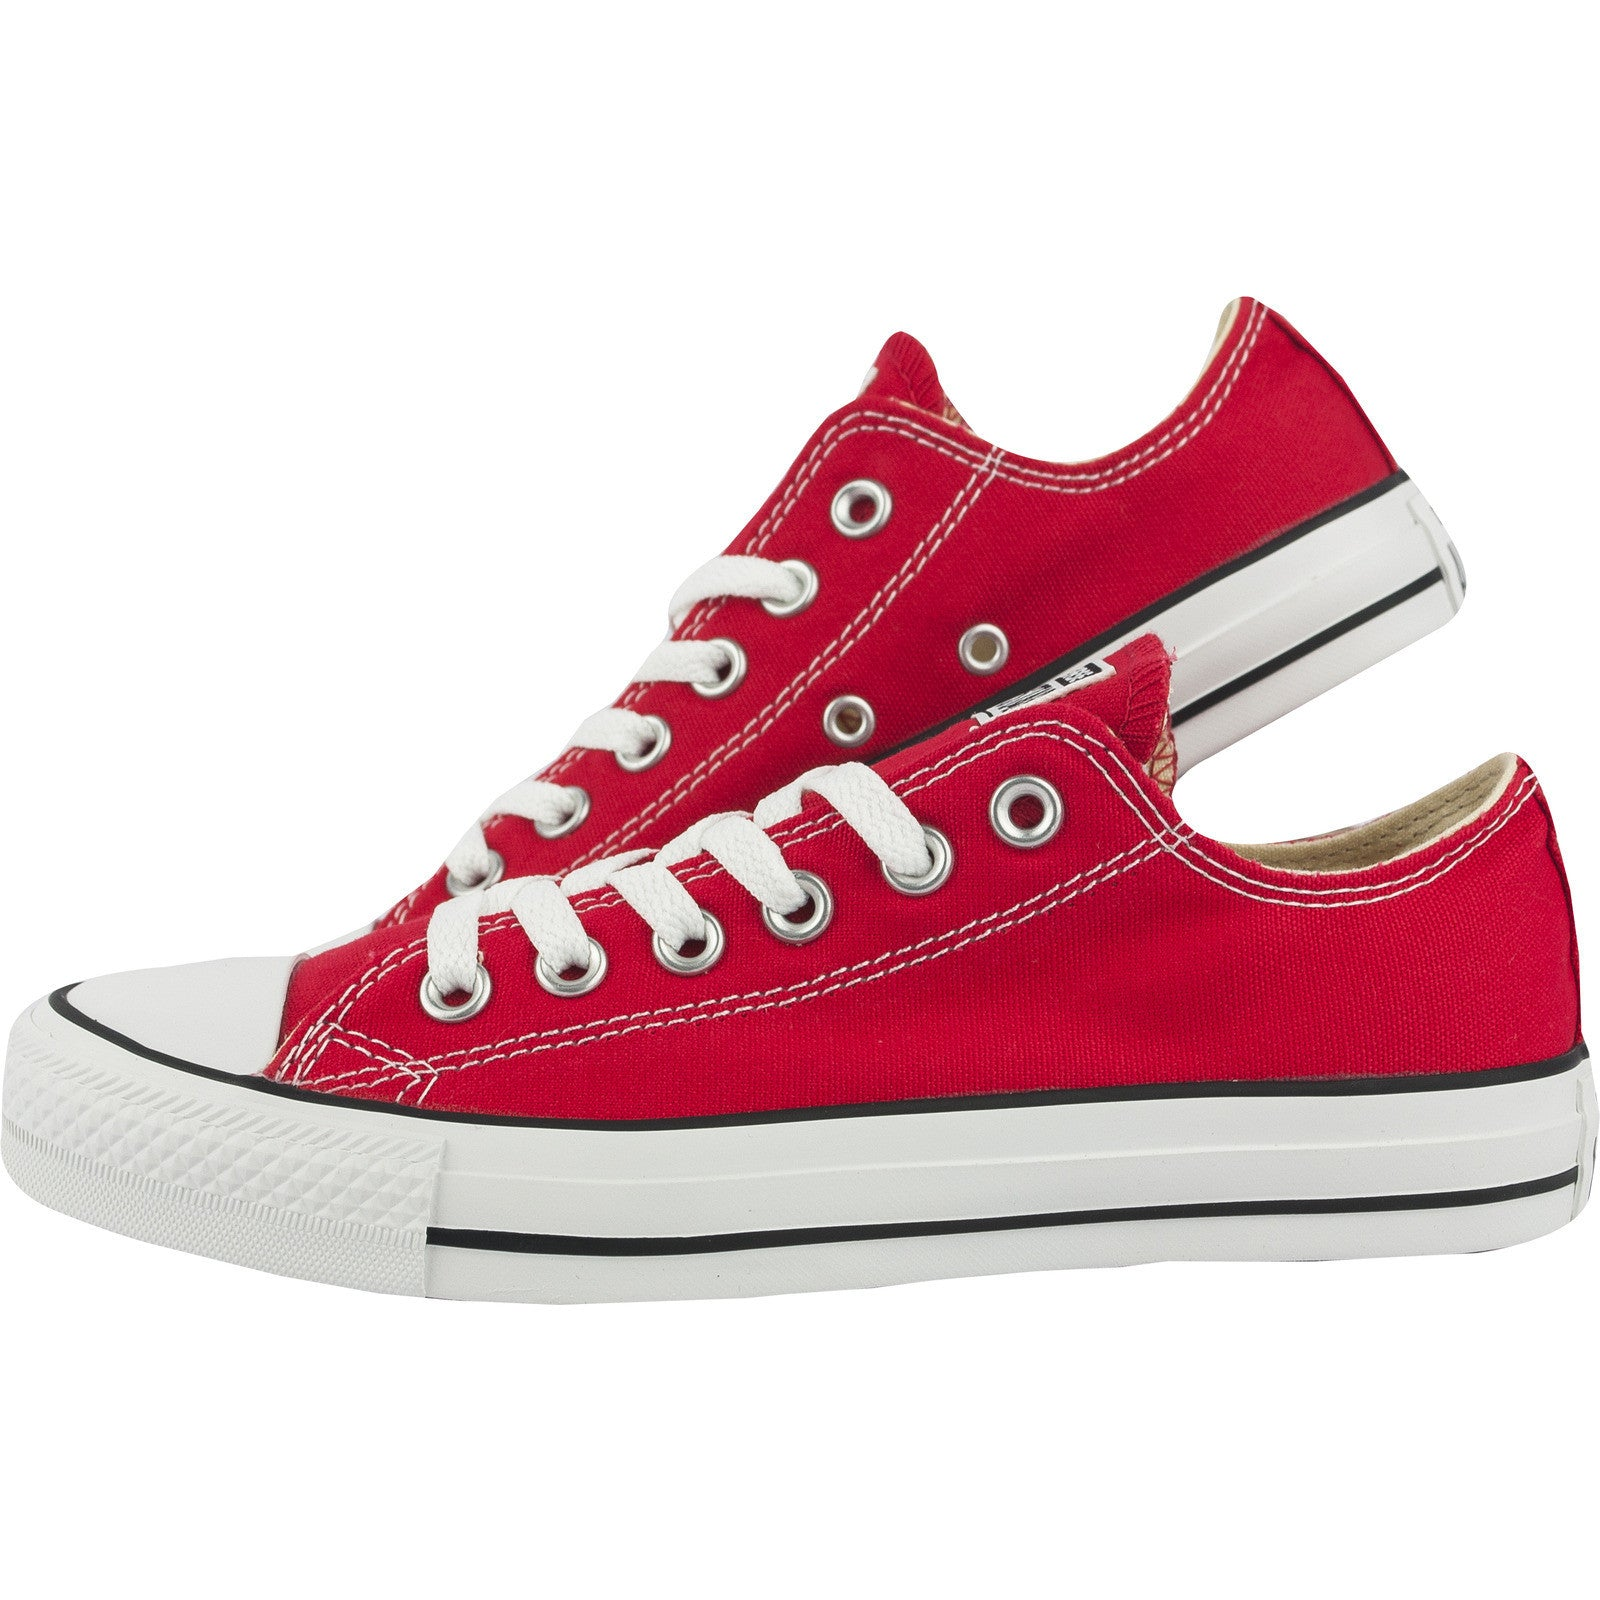 d3f3f71a943318 Converse Classic Chuck Taylor Red Low Tops Trainer Sneaker All Star OX NEW sizes  Shoes ...